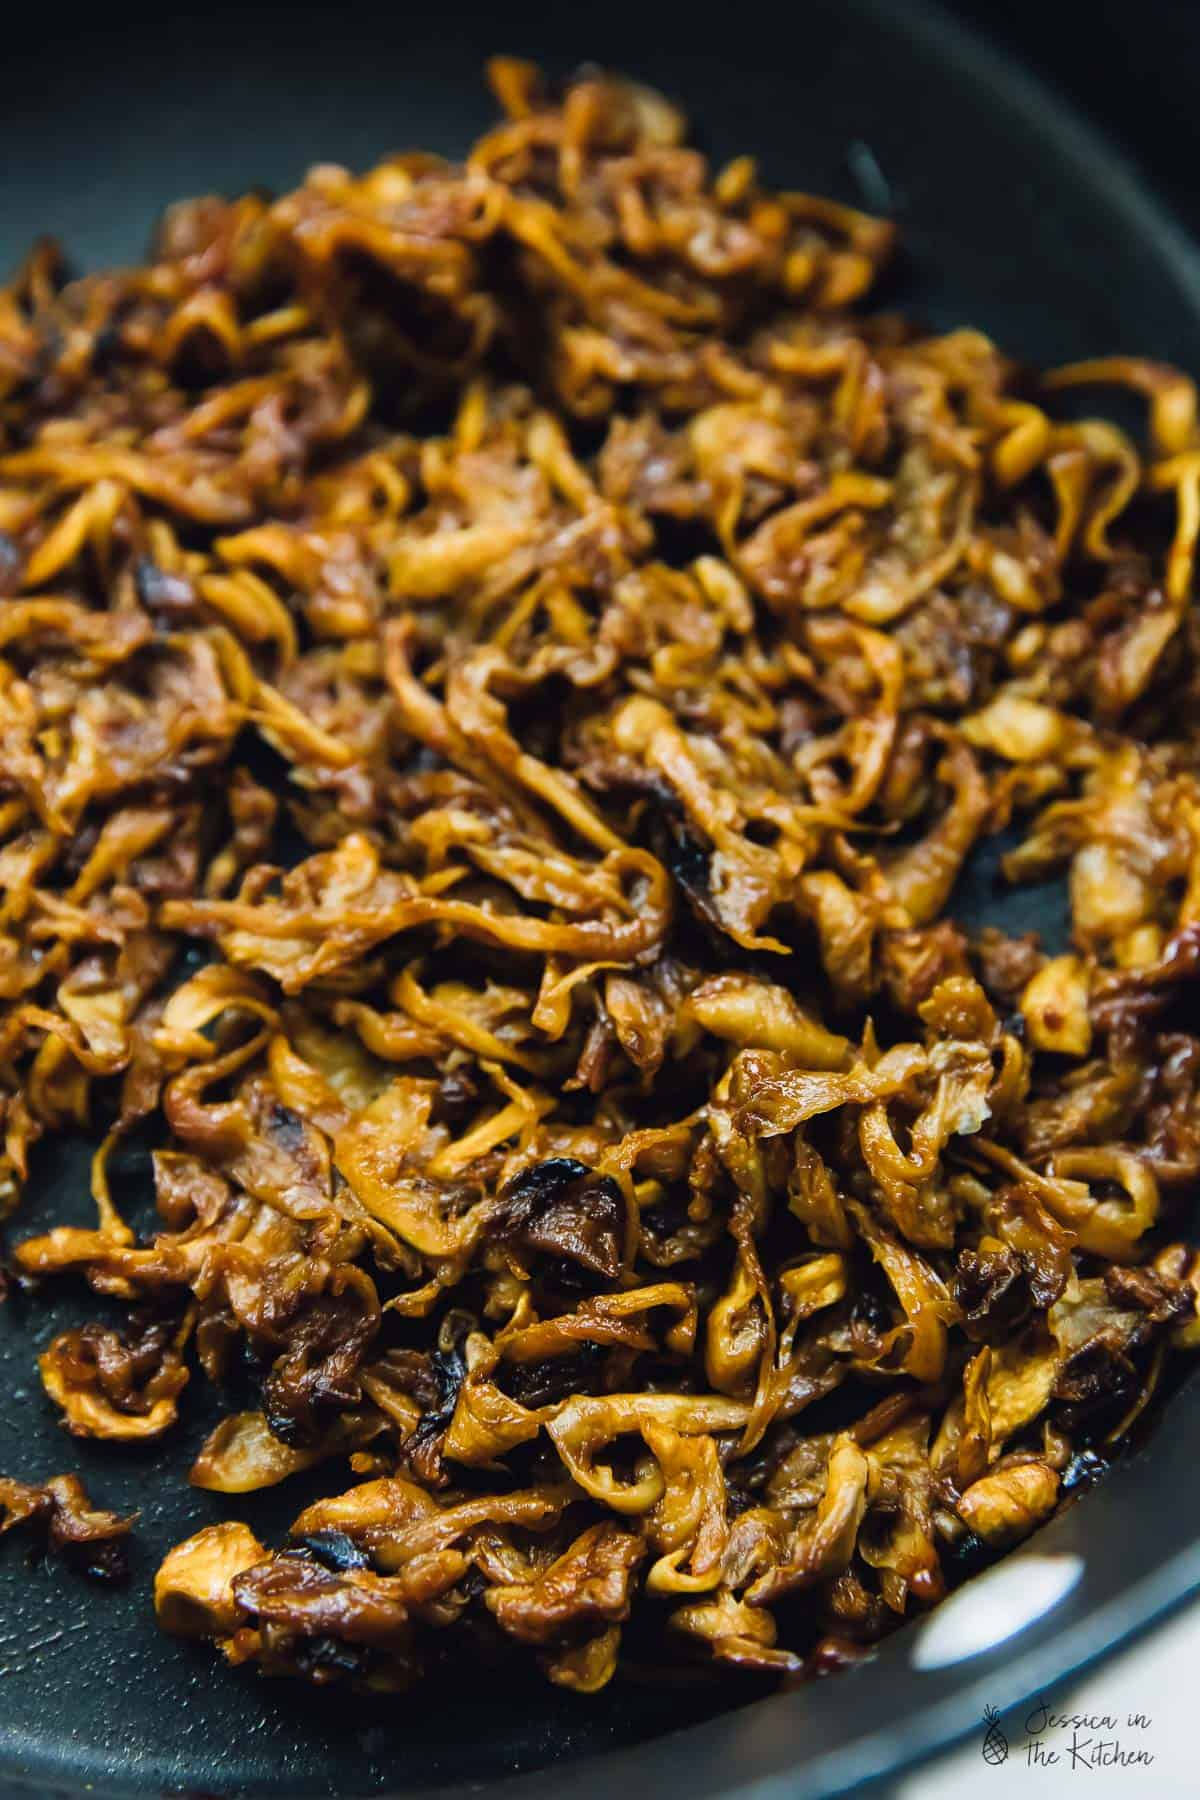 These Vegan Pulled 'Pork' Sandwiches are mind-blowingly satisfying! They are smoky, hearty, packed with the umami flavour of Oyster Mushrooms, and so quick and easy to whip up! #jessicainthekitchen #vegan #glutenfree #mushrooms #veganpulledpork #vegandinner #dinnerrecipes